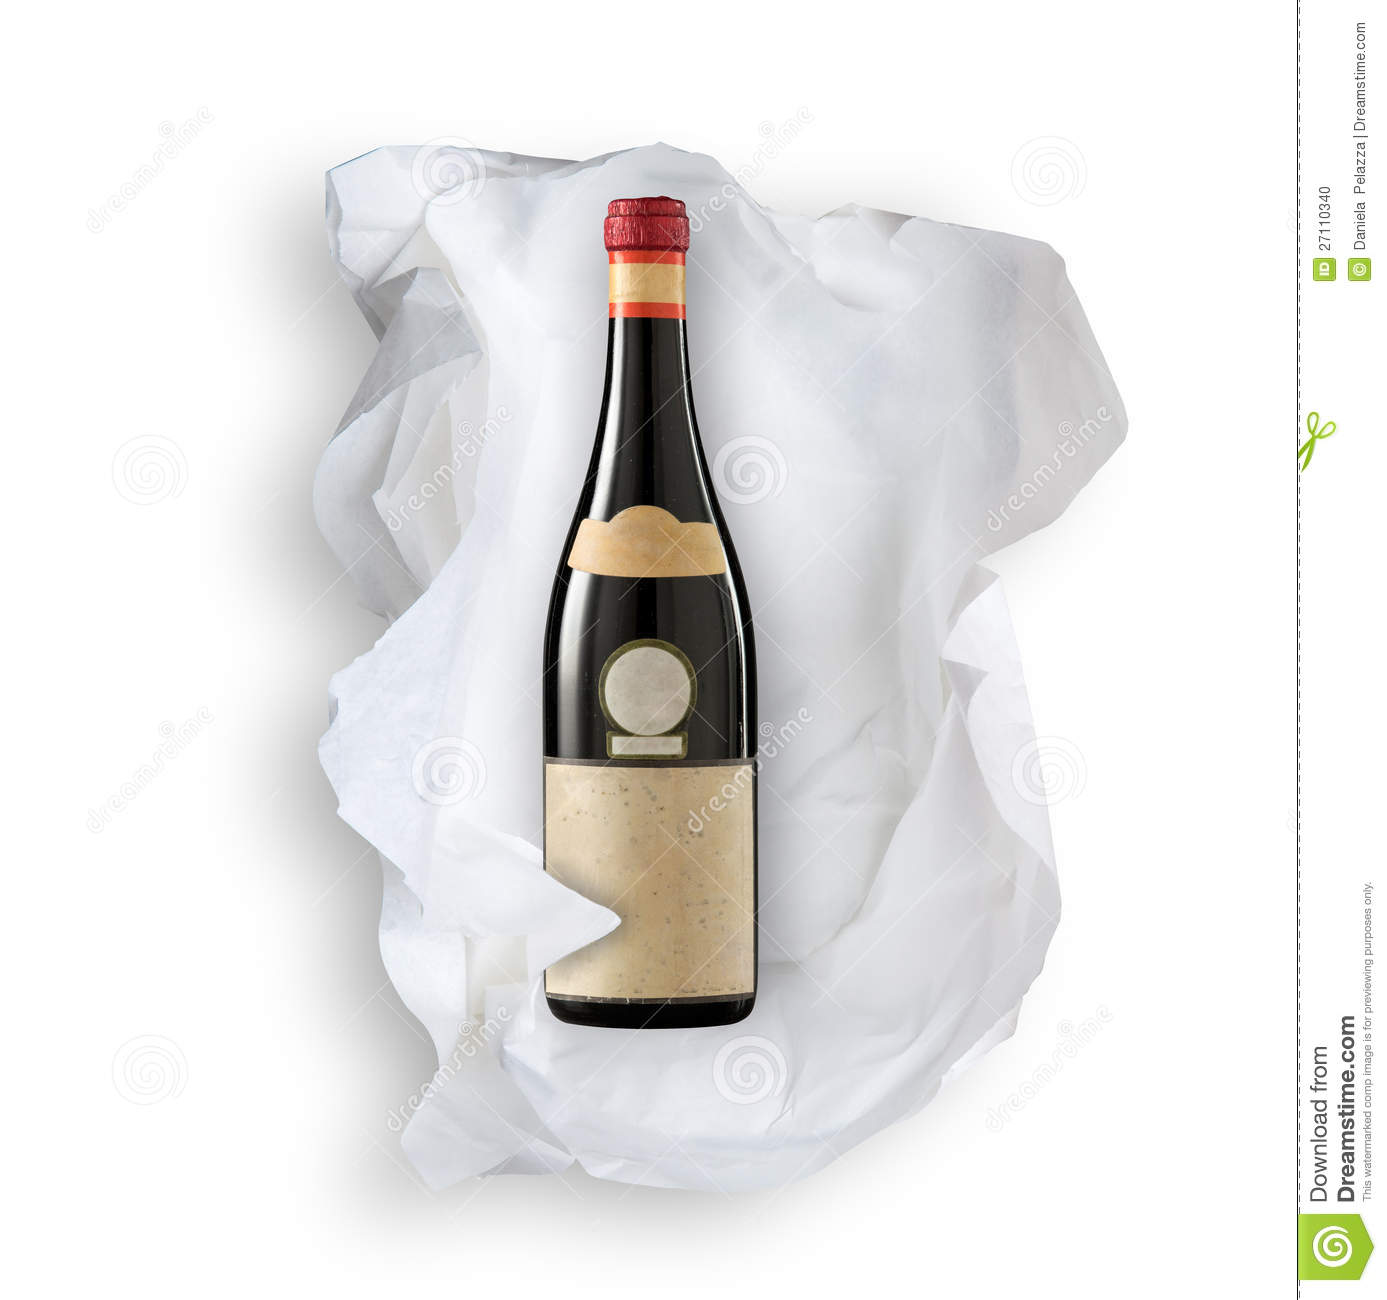 papier de soie de soie et bouteille de vin photo stock image 27110340. Black Bedroom Furniture Sets. Home Design Ideas